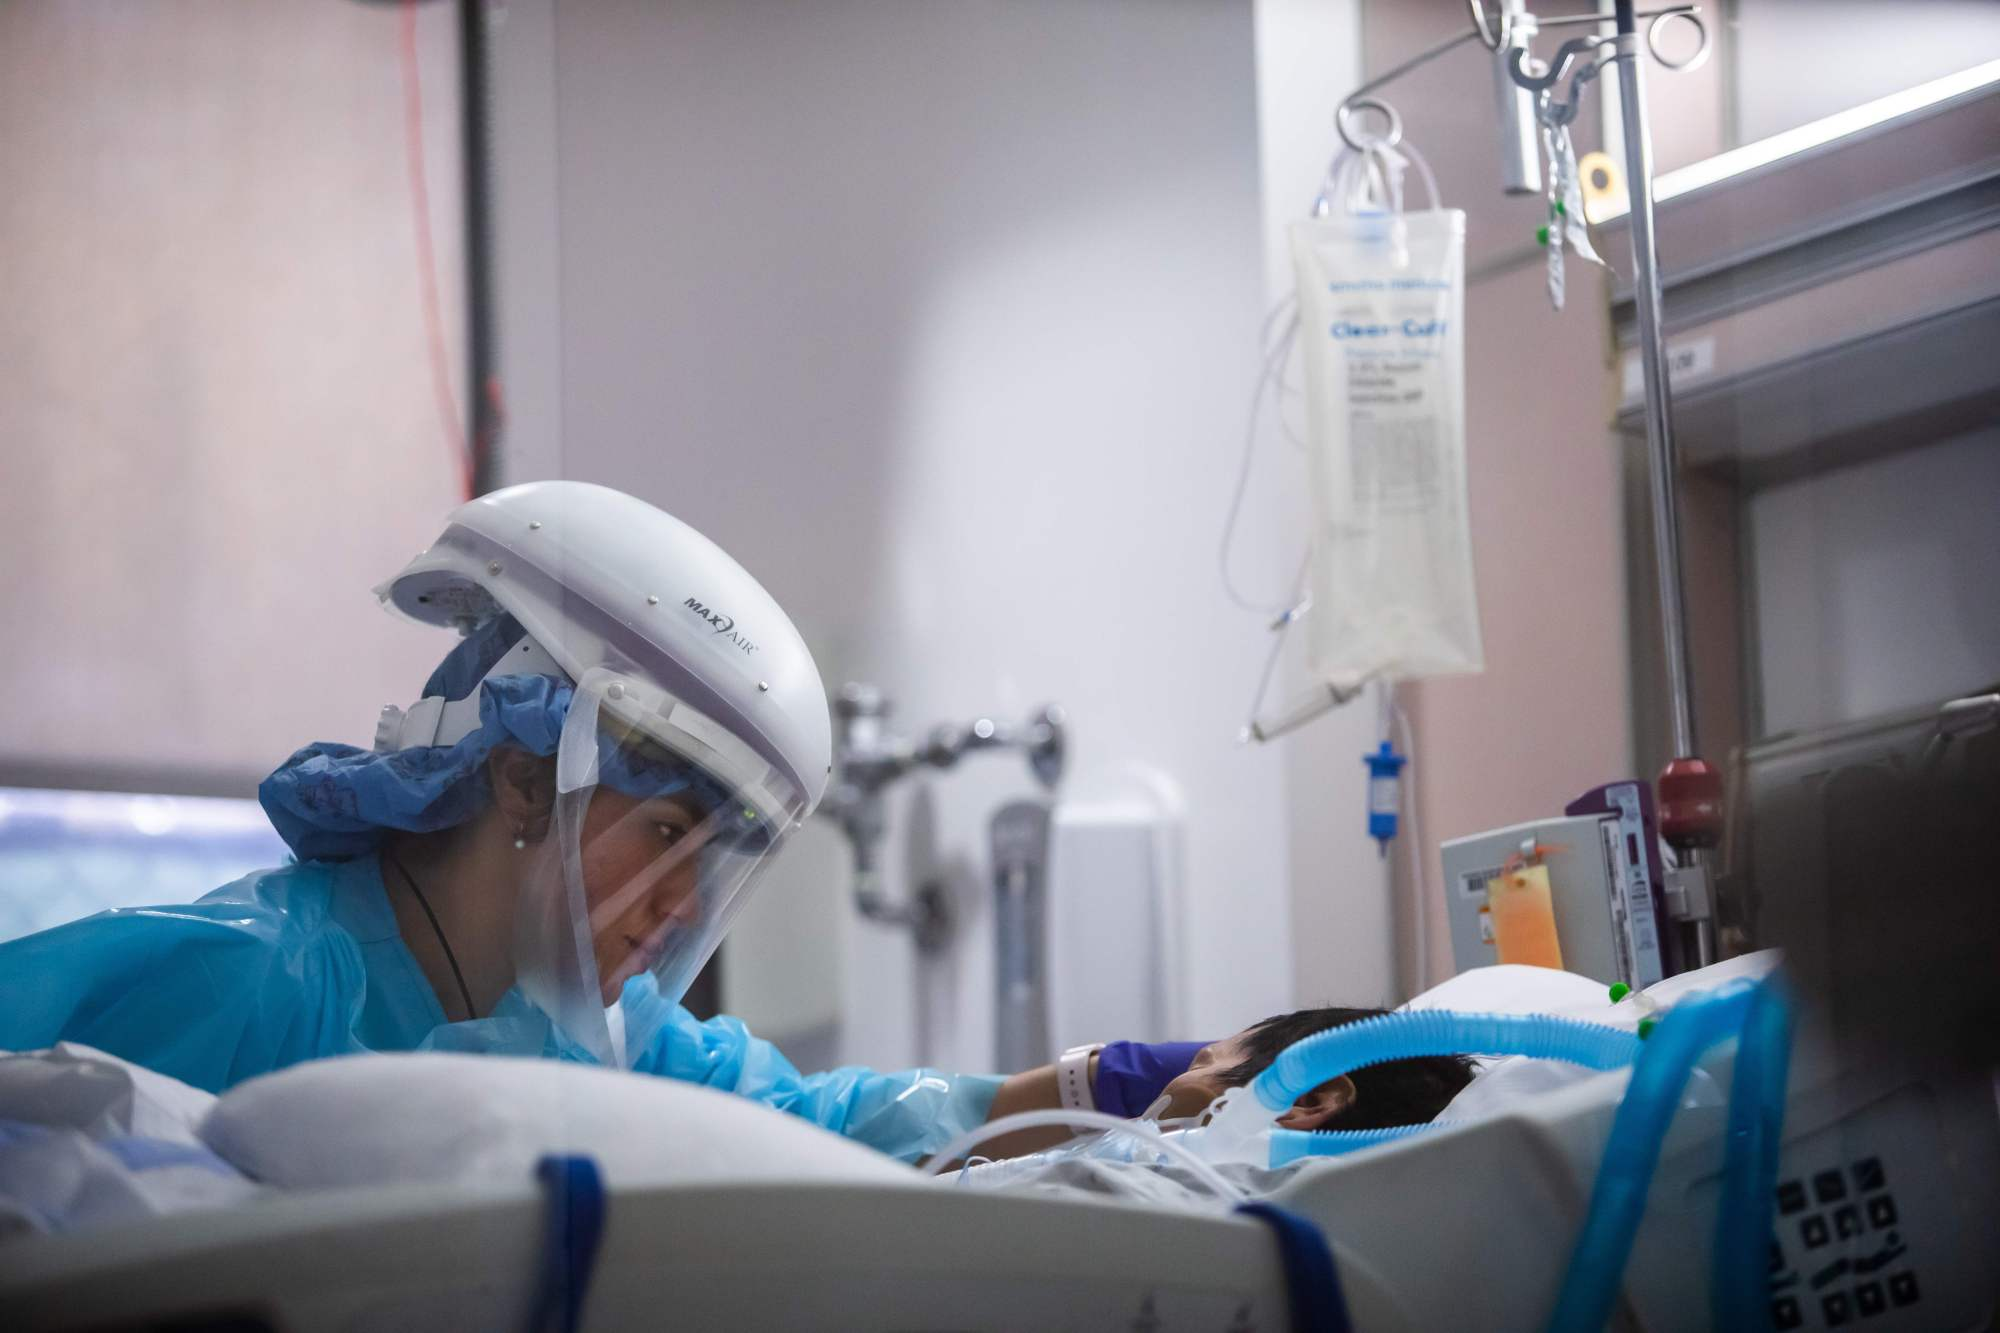 Registered nurse Yeni Sandoval wears personal protective equipment while she cares for a COVID-19 patient in the intensive care unit at Providence Cedars-Sinai Tarzana Medical Center in Tarzana on Jan. 3, 2021. (Apu Gomes / AFP / Getty Images)